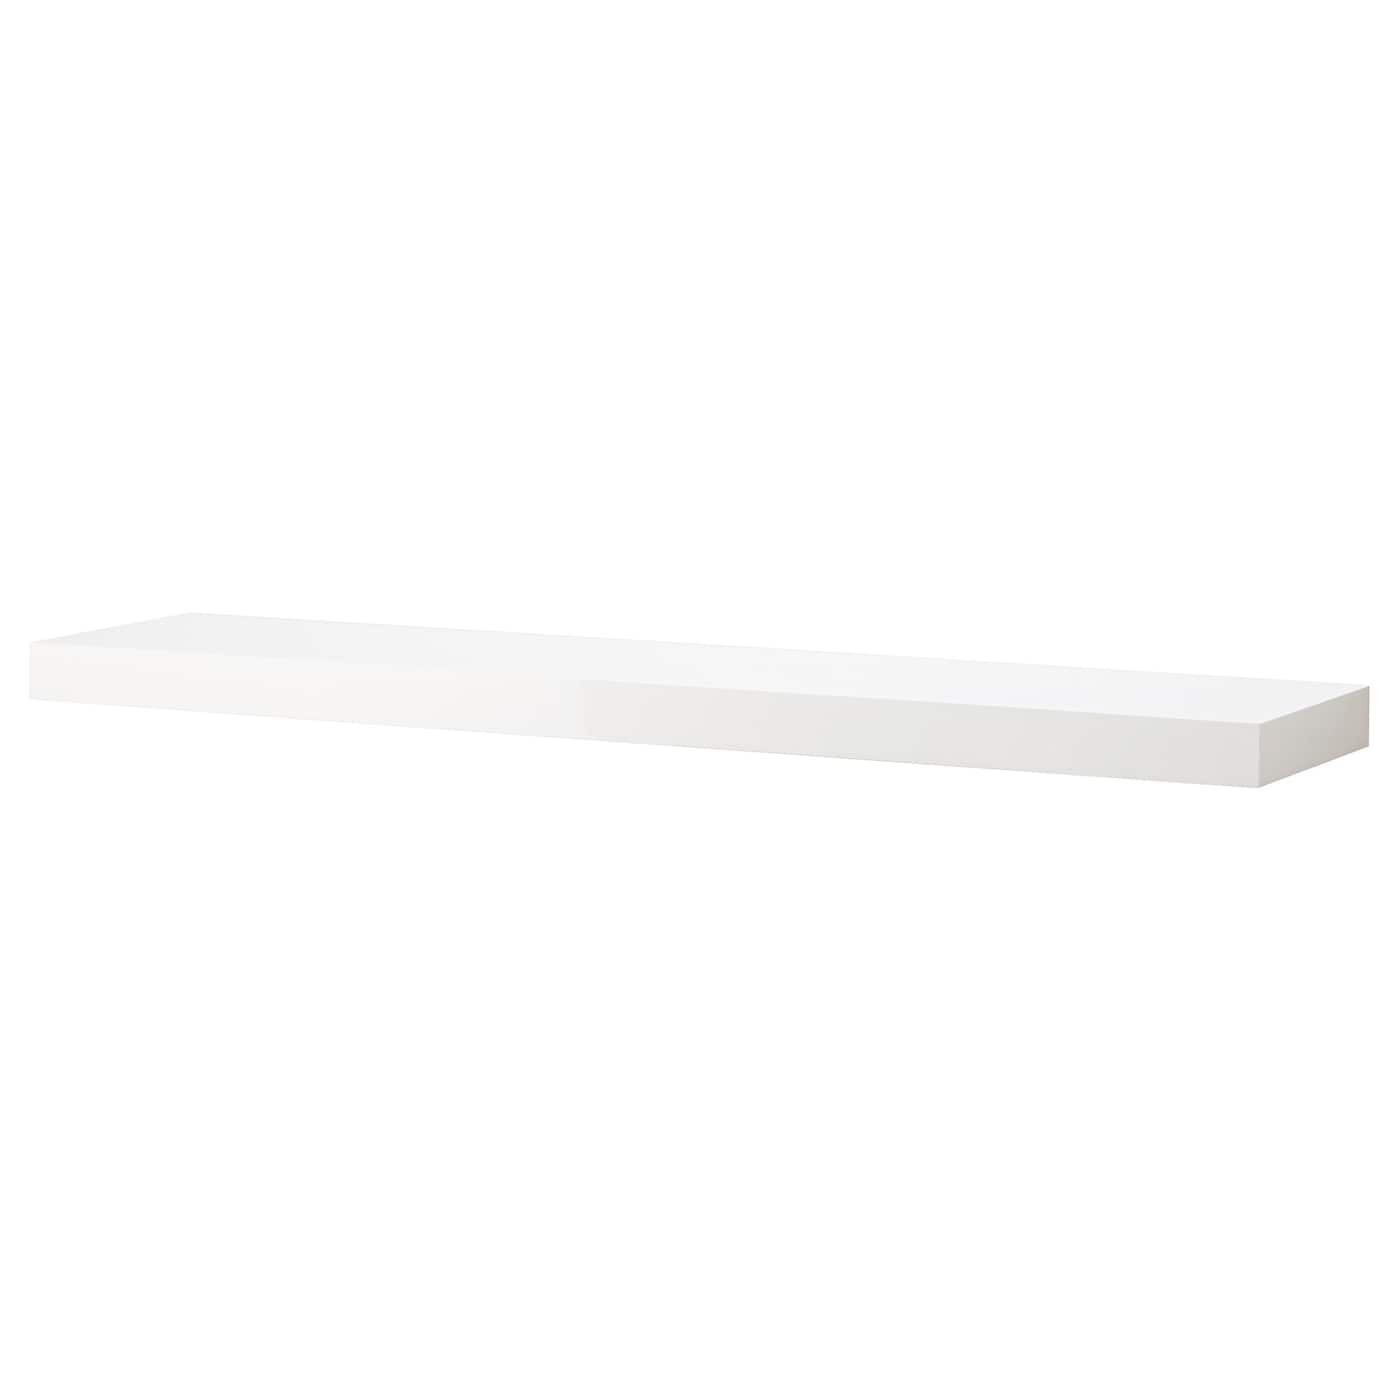 lack wall shelf white high gloss 110x26 cm ikea. Black Bedroom Furniture Sets. Home Design Ideas